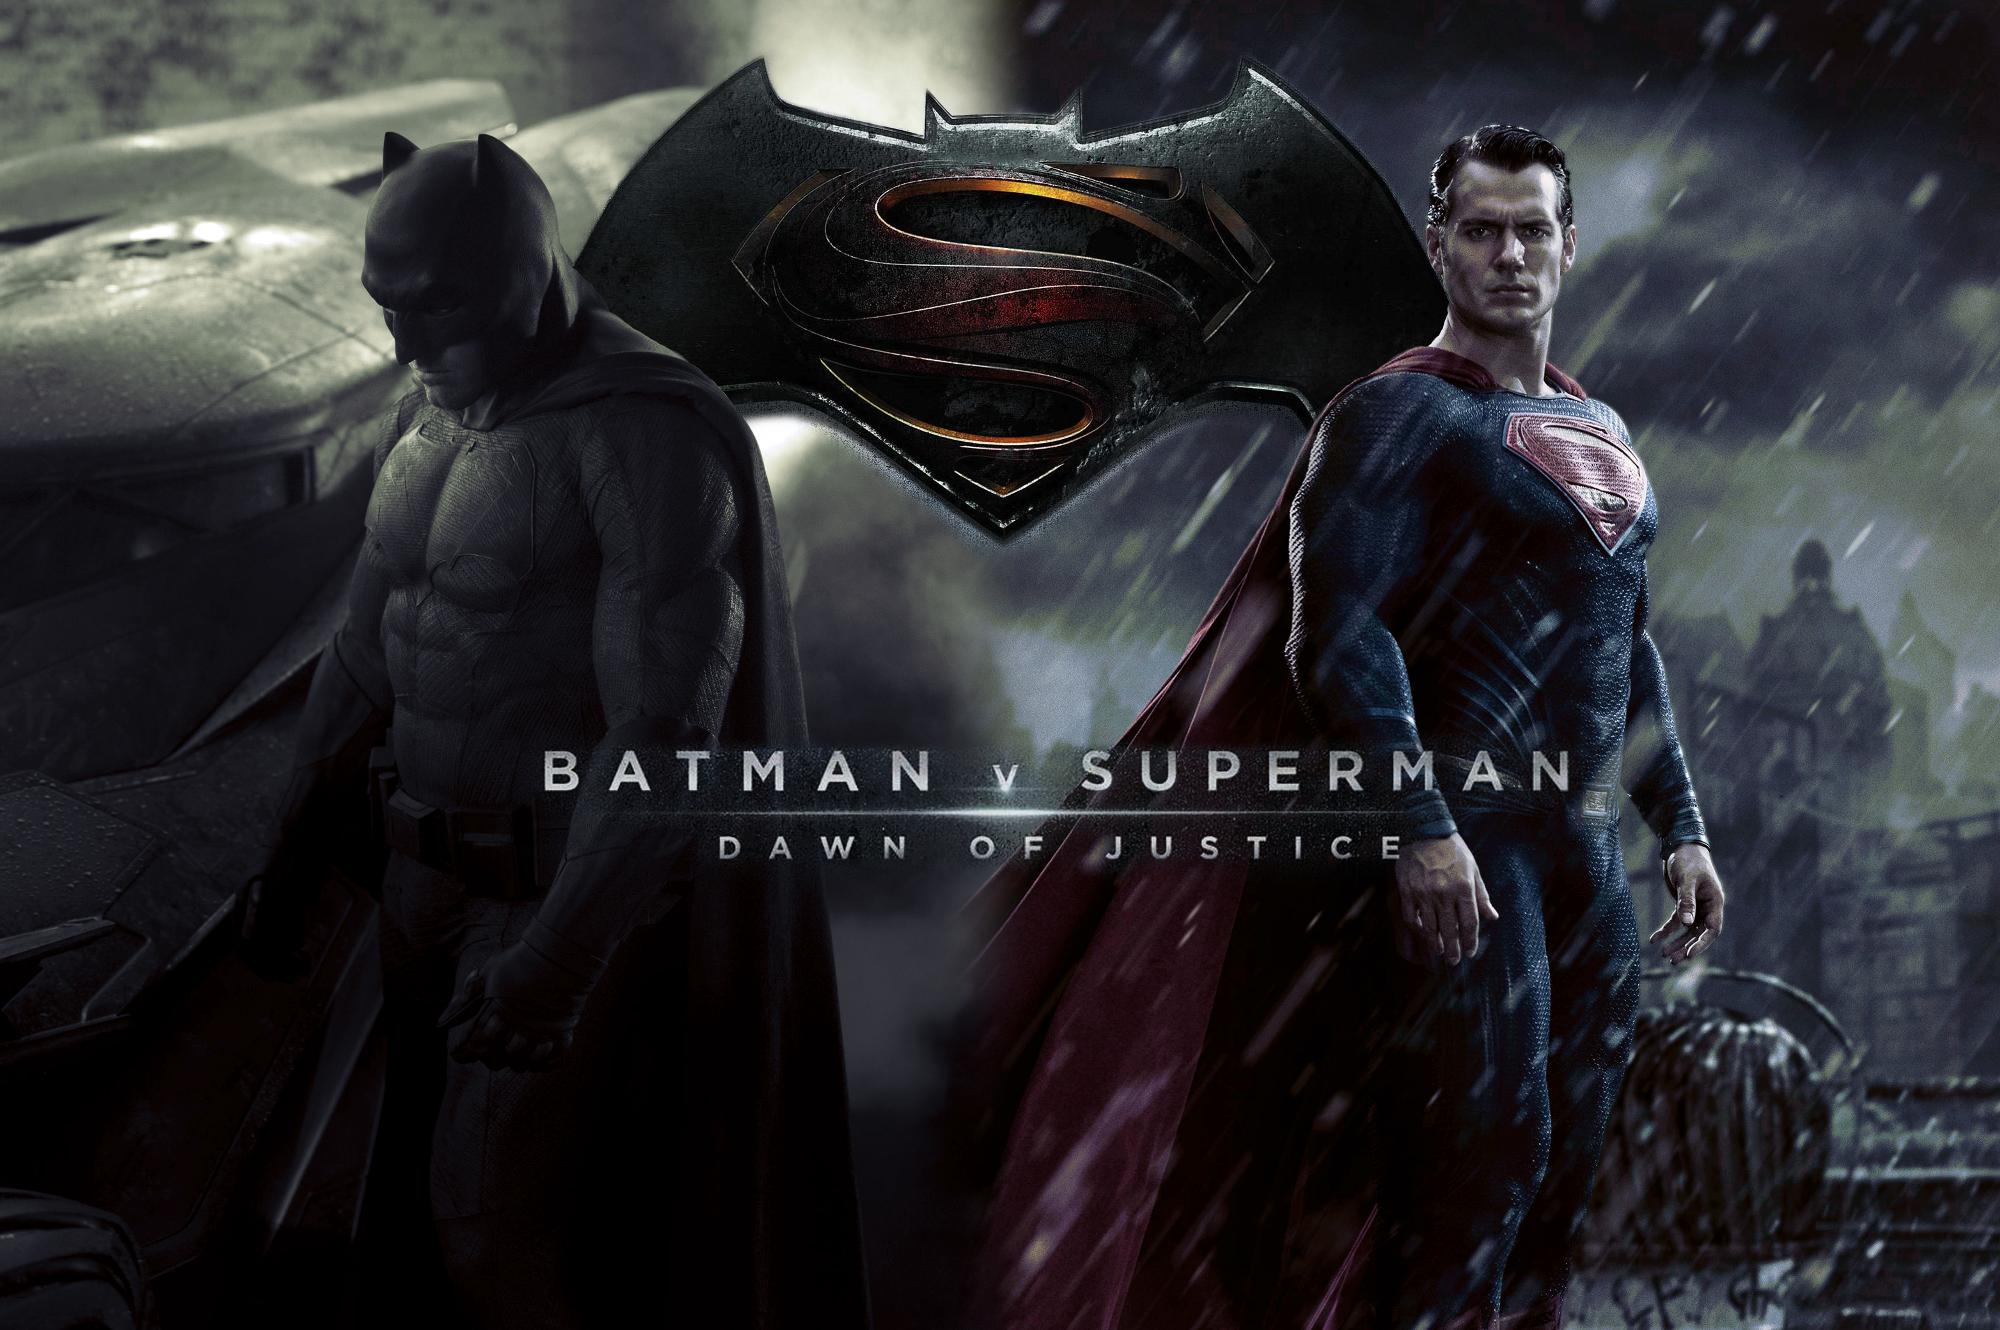 Batman And Superman Wallpaper Background HD Download Free 2000x1330